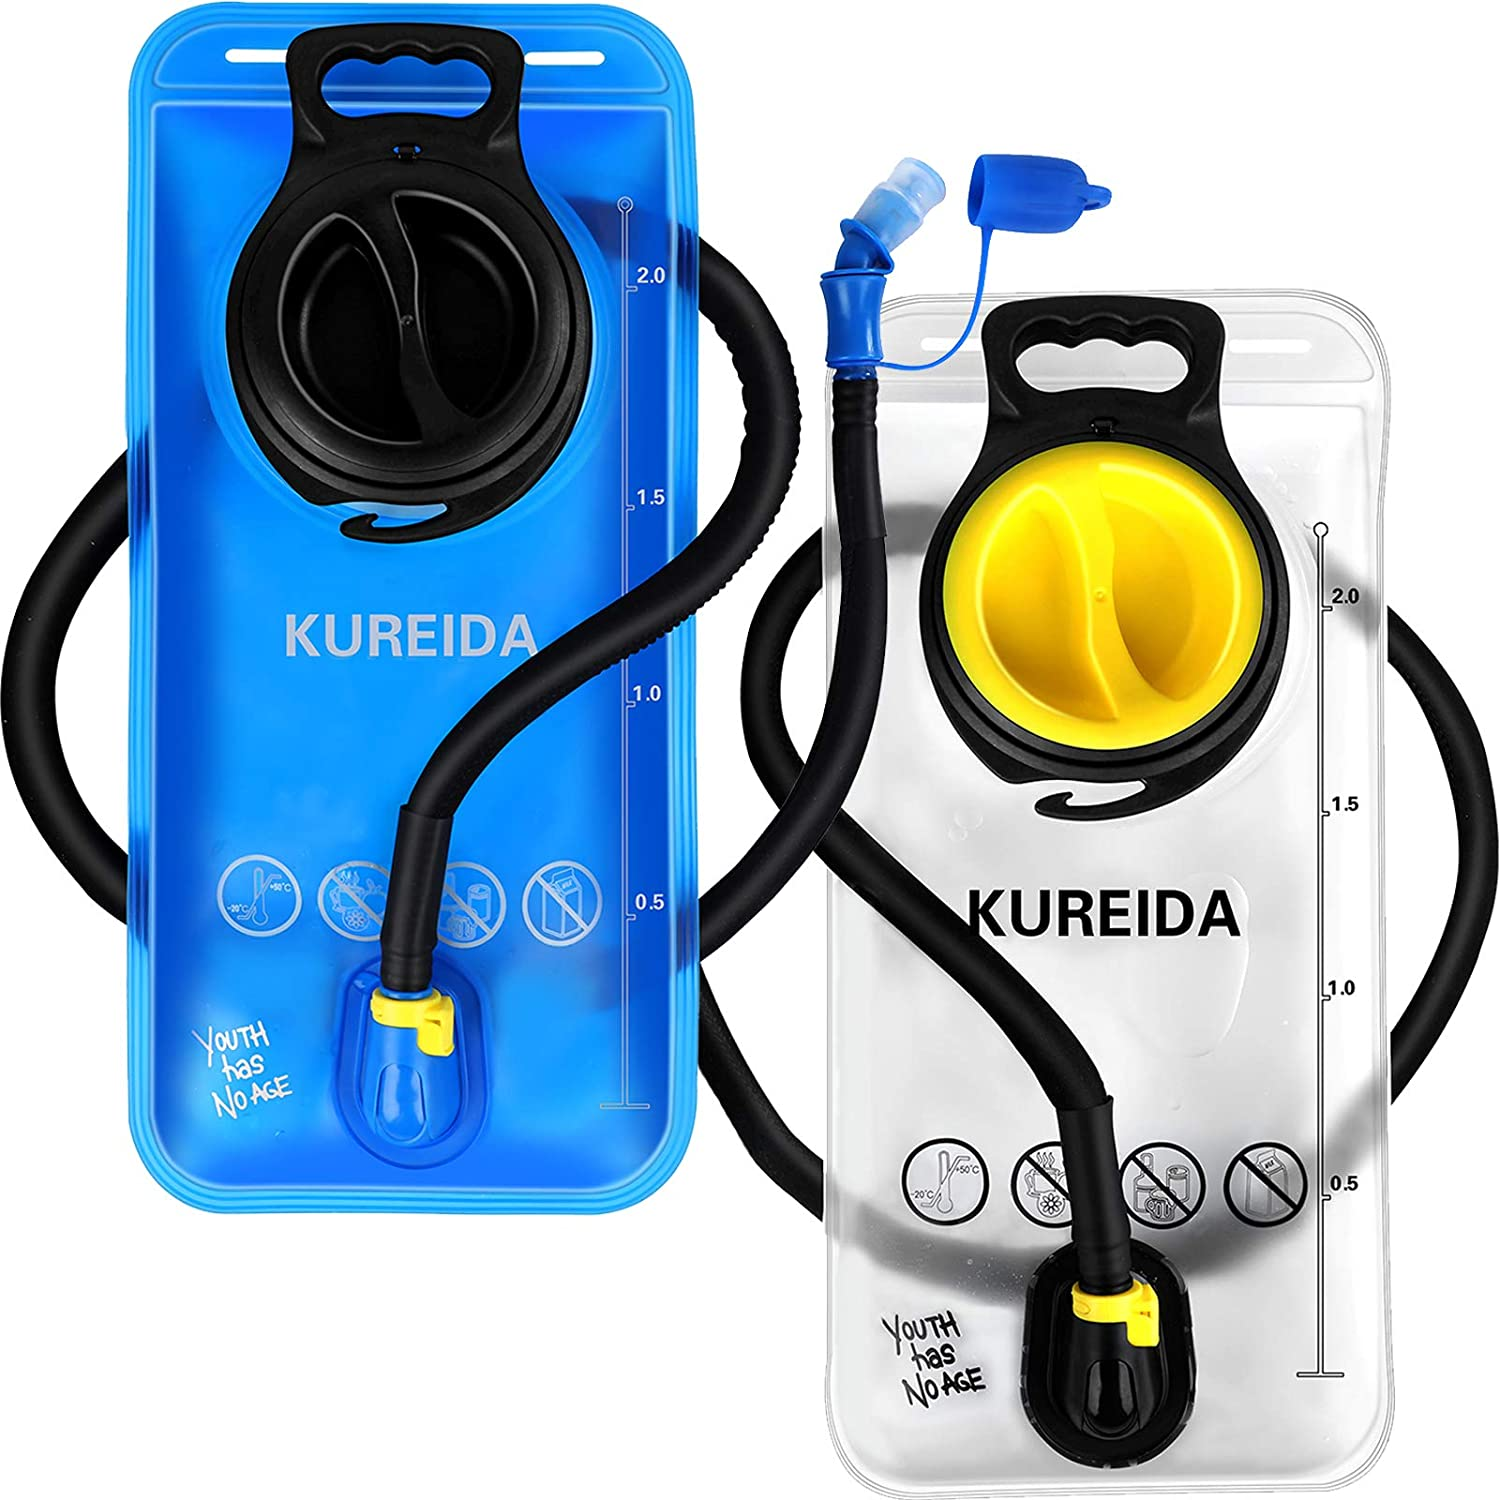 KUREIDA Hydration Bladder 2 Liter Max 51% OFF T with Insulated Super popular specialty store Water